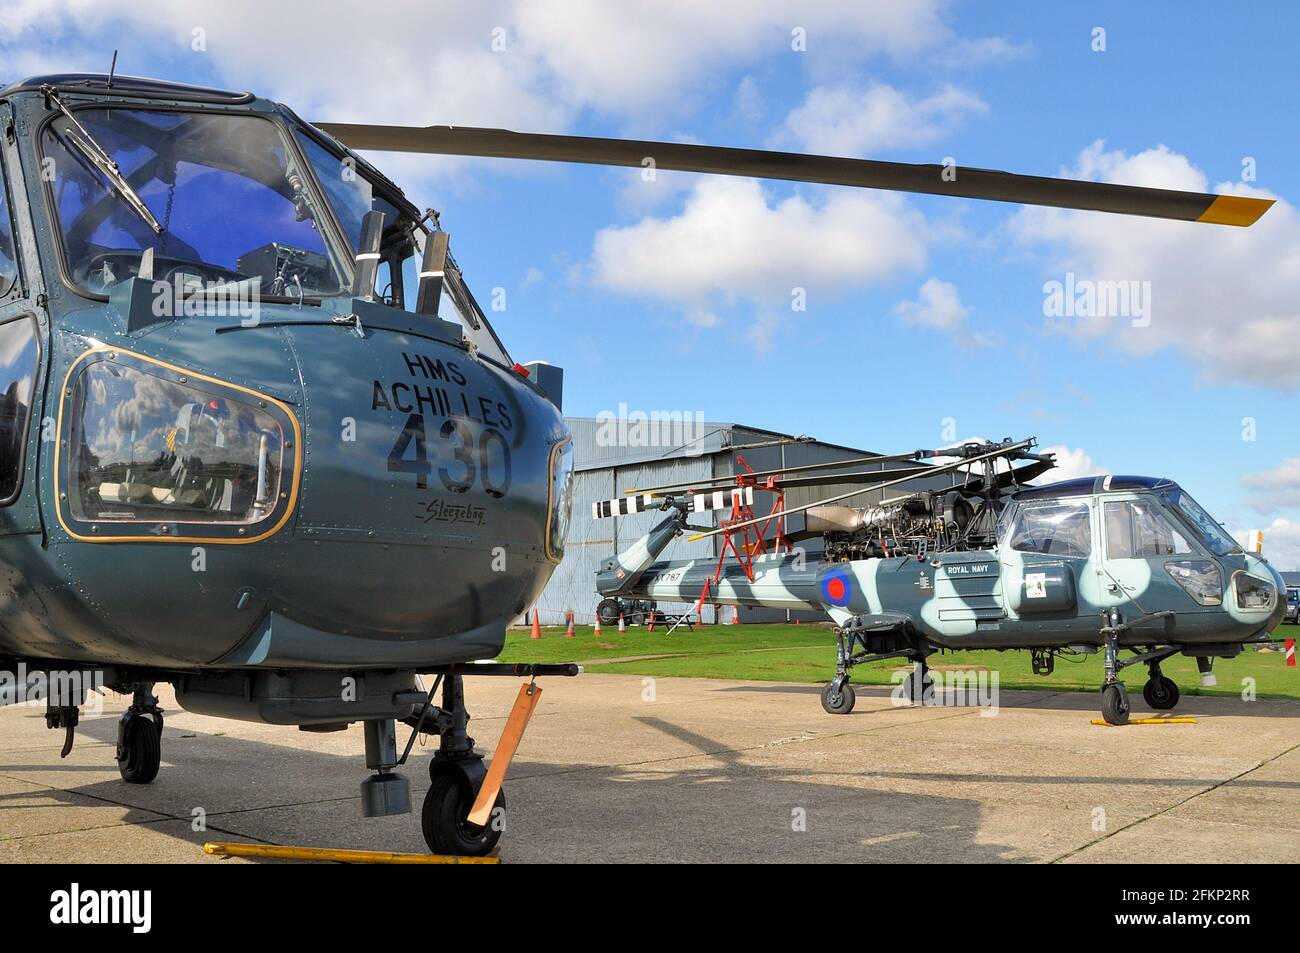 Westland Wasp helicopters at North Weald, Essex, UK. Vintage, classic helicopter types. Formerly Royal Navy military helicopter Stock Photo